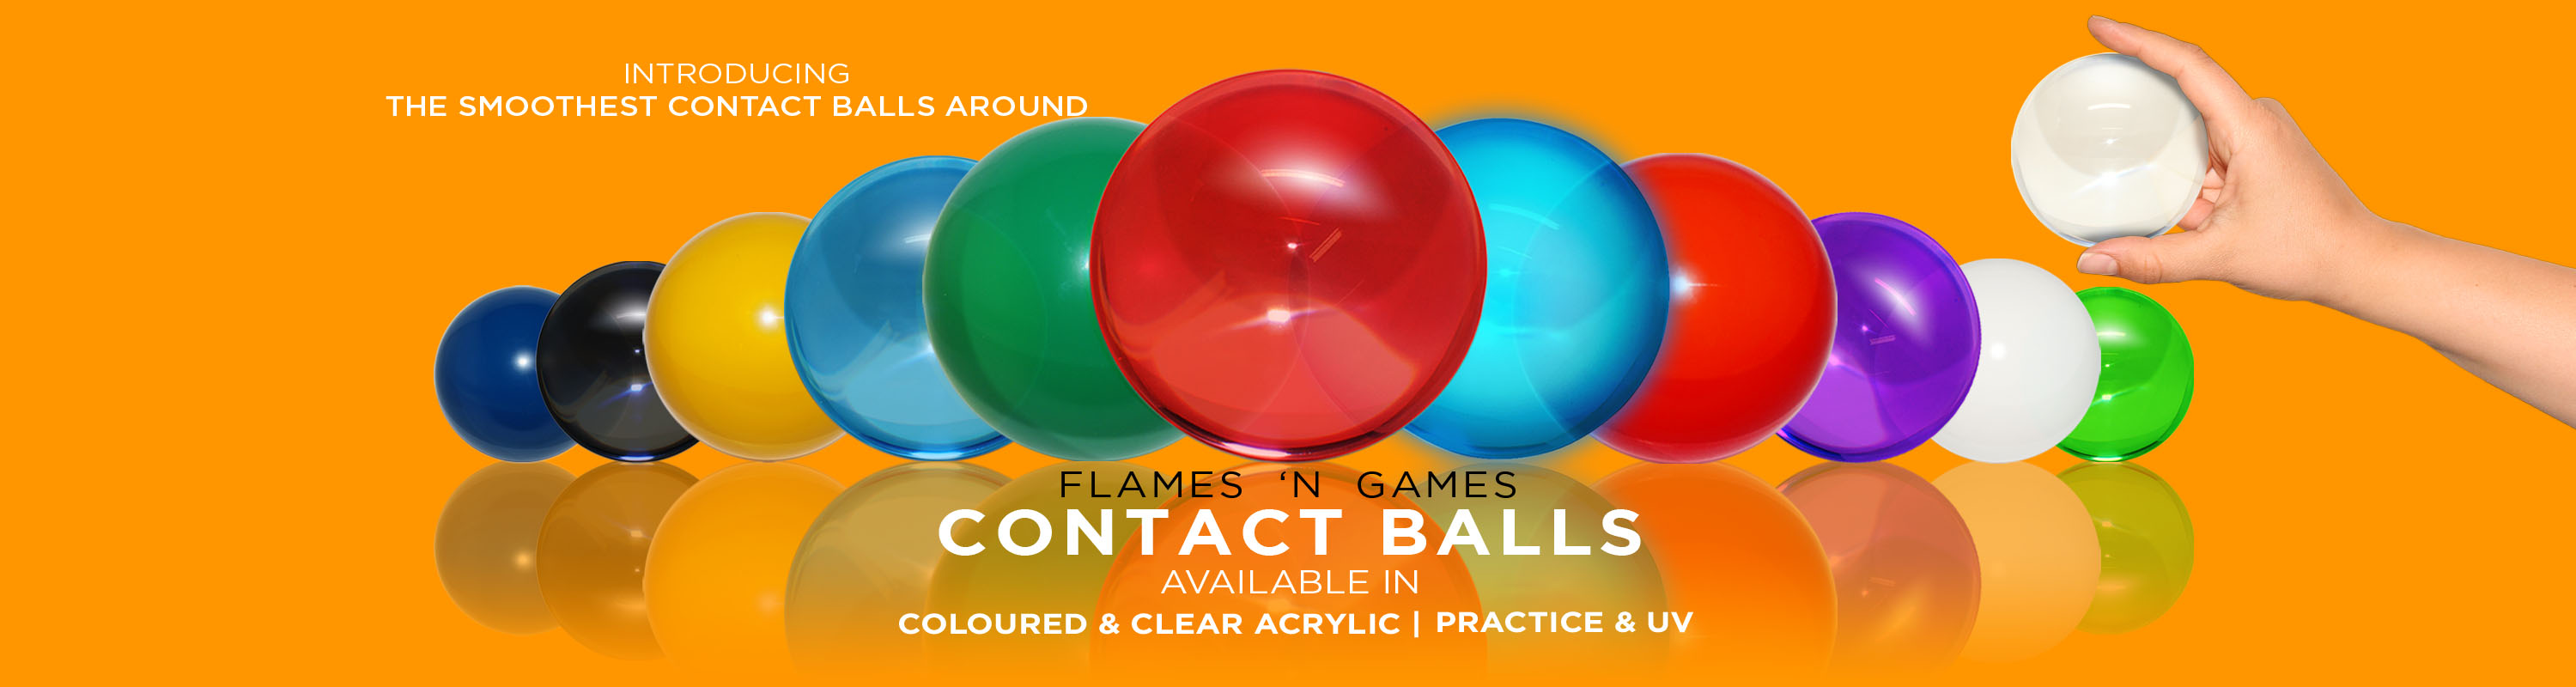 Juggling, Fire Spinning - Flames 'N Games - Buy Diabolos